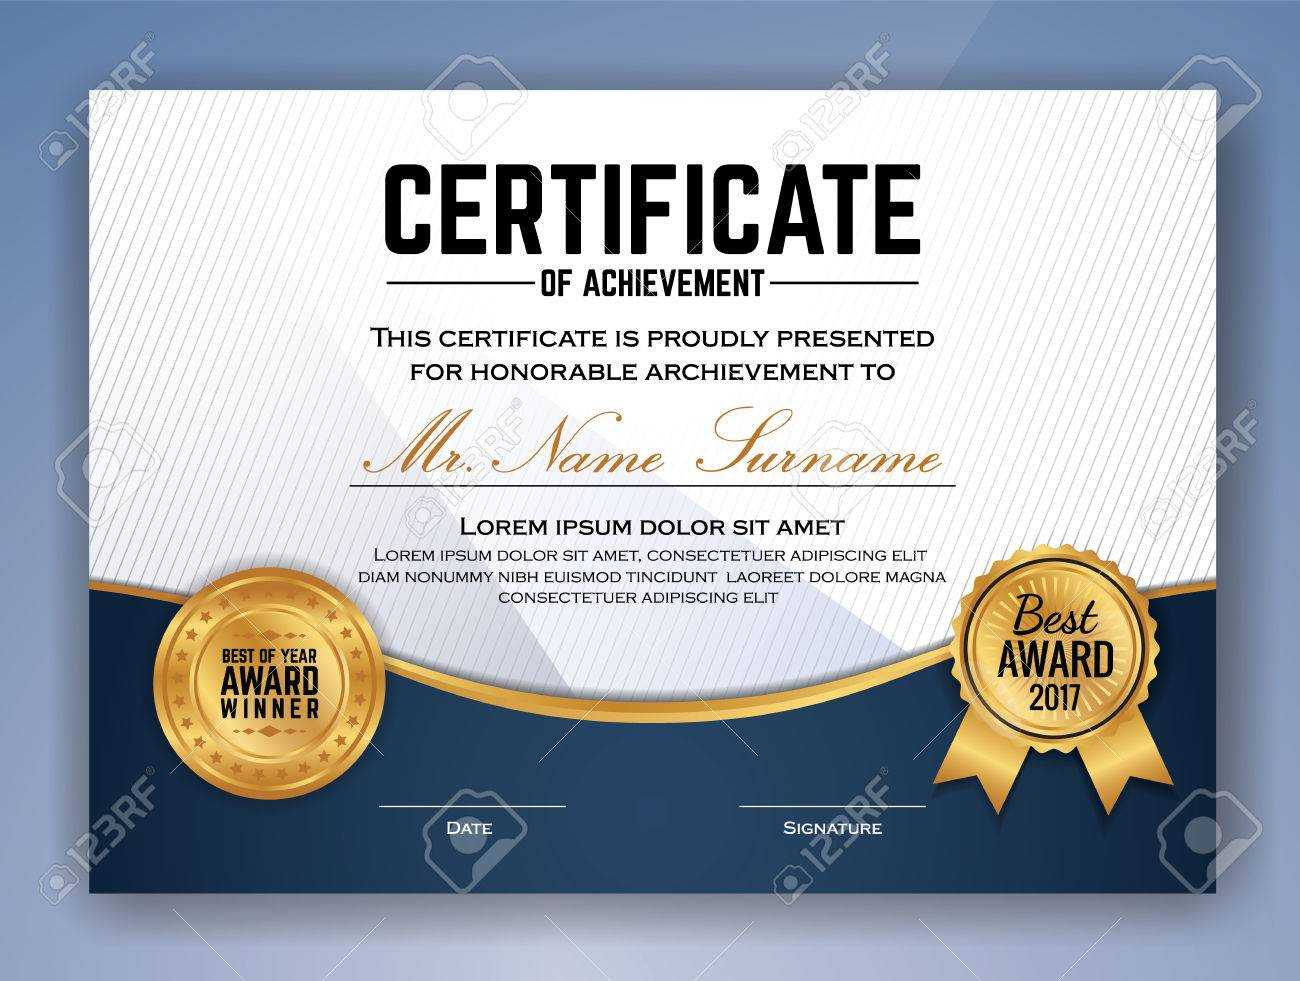 Multipurpose Professional Certificate Template Design For Print With Professional Award Certificate Template